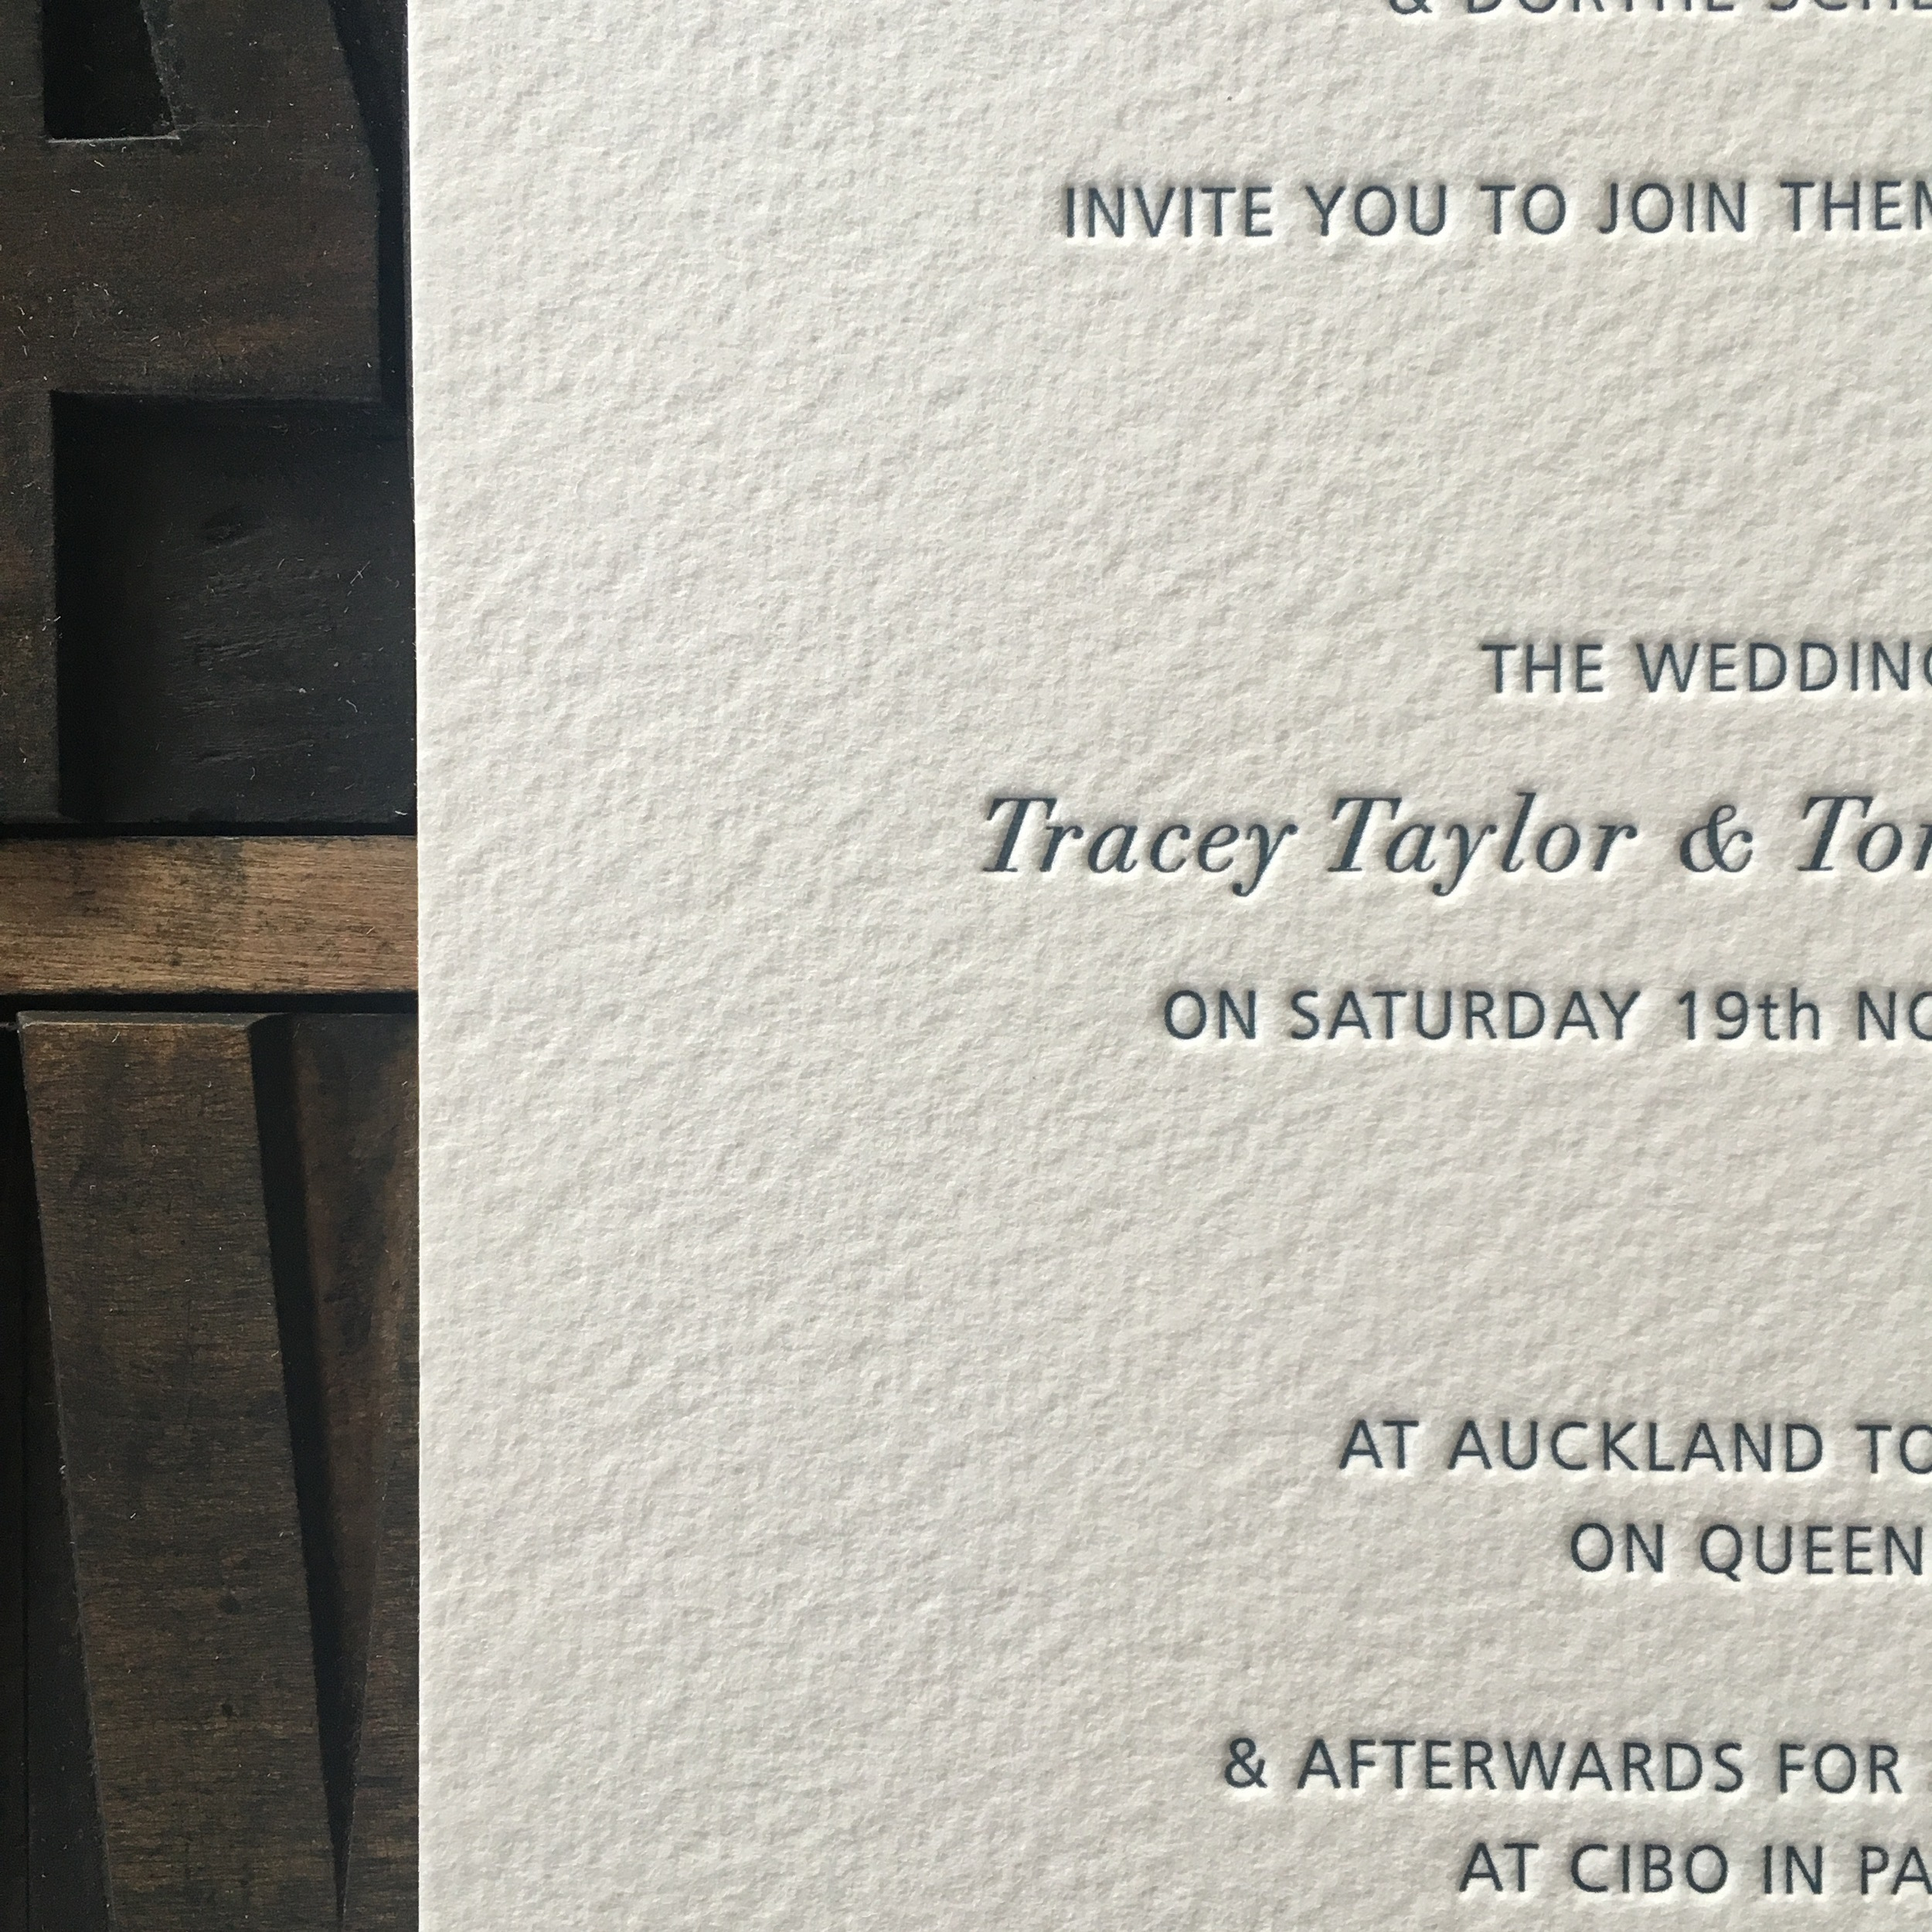 Tracey & Tomas Detail